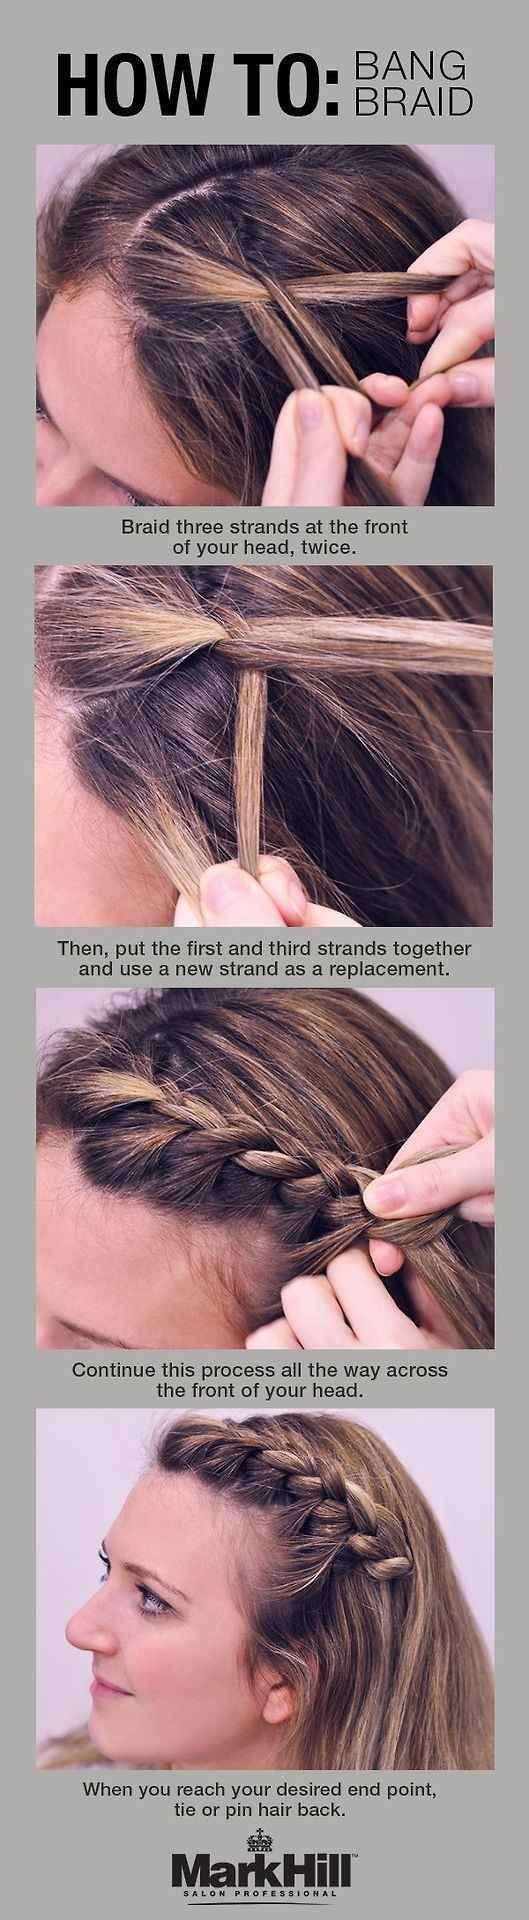 Remarkable 1000 Ideas About Braid Bangs On Pinterest Hairstyles Modern Hairstyles For Men Maxibearus